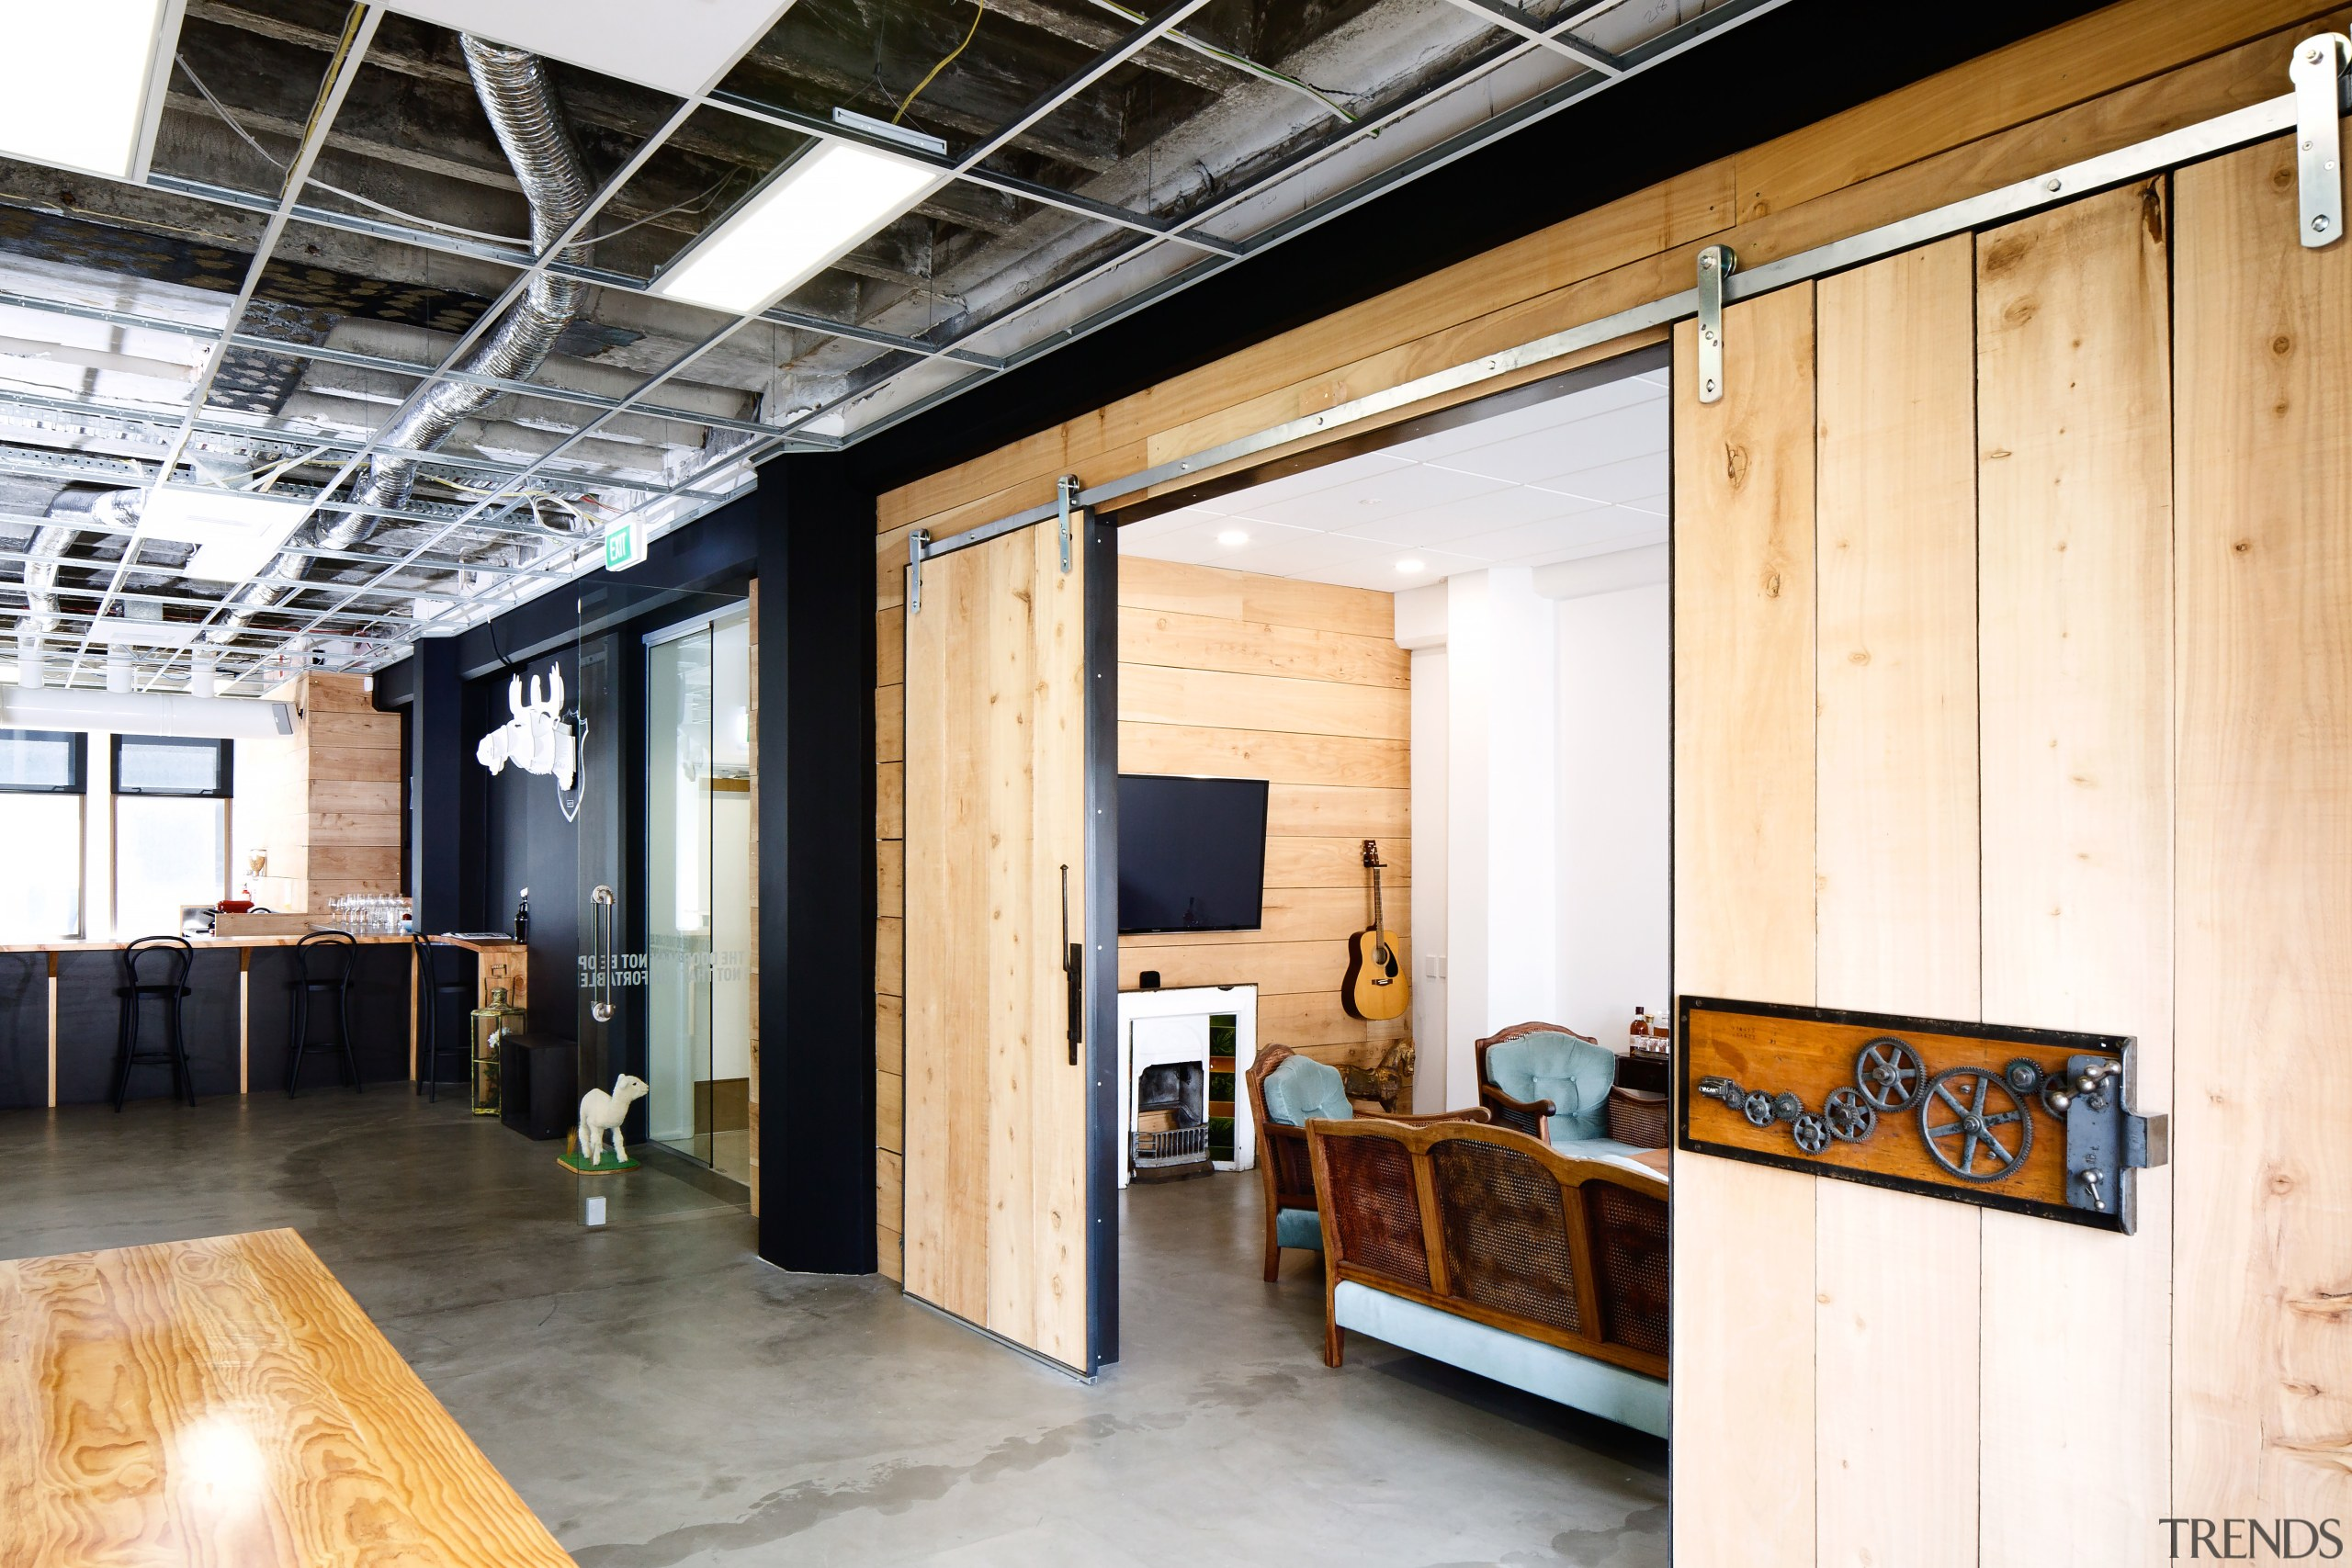 The informal visitor reception area at EightyOne is ceiling, interior design, loft, wood, white